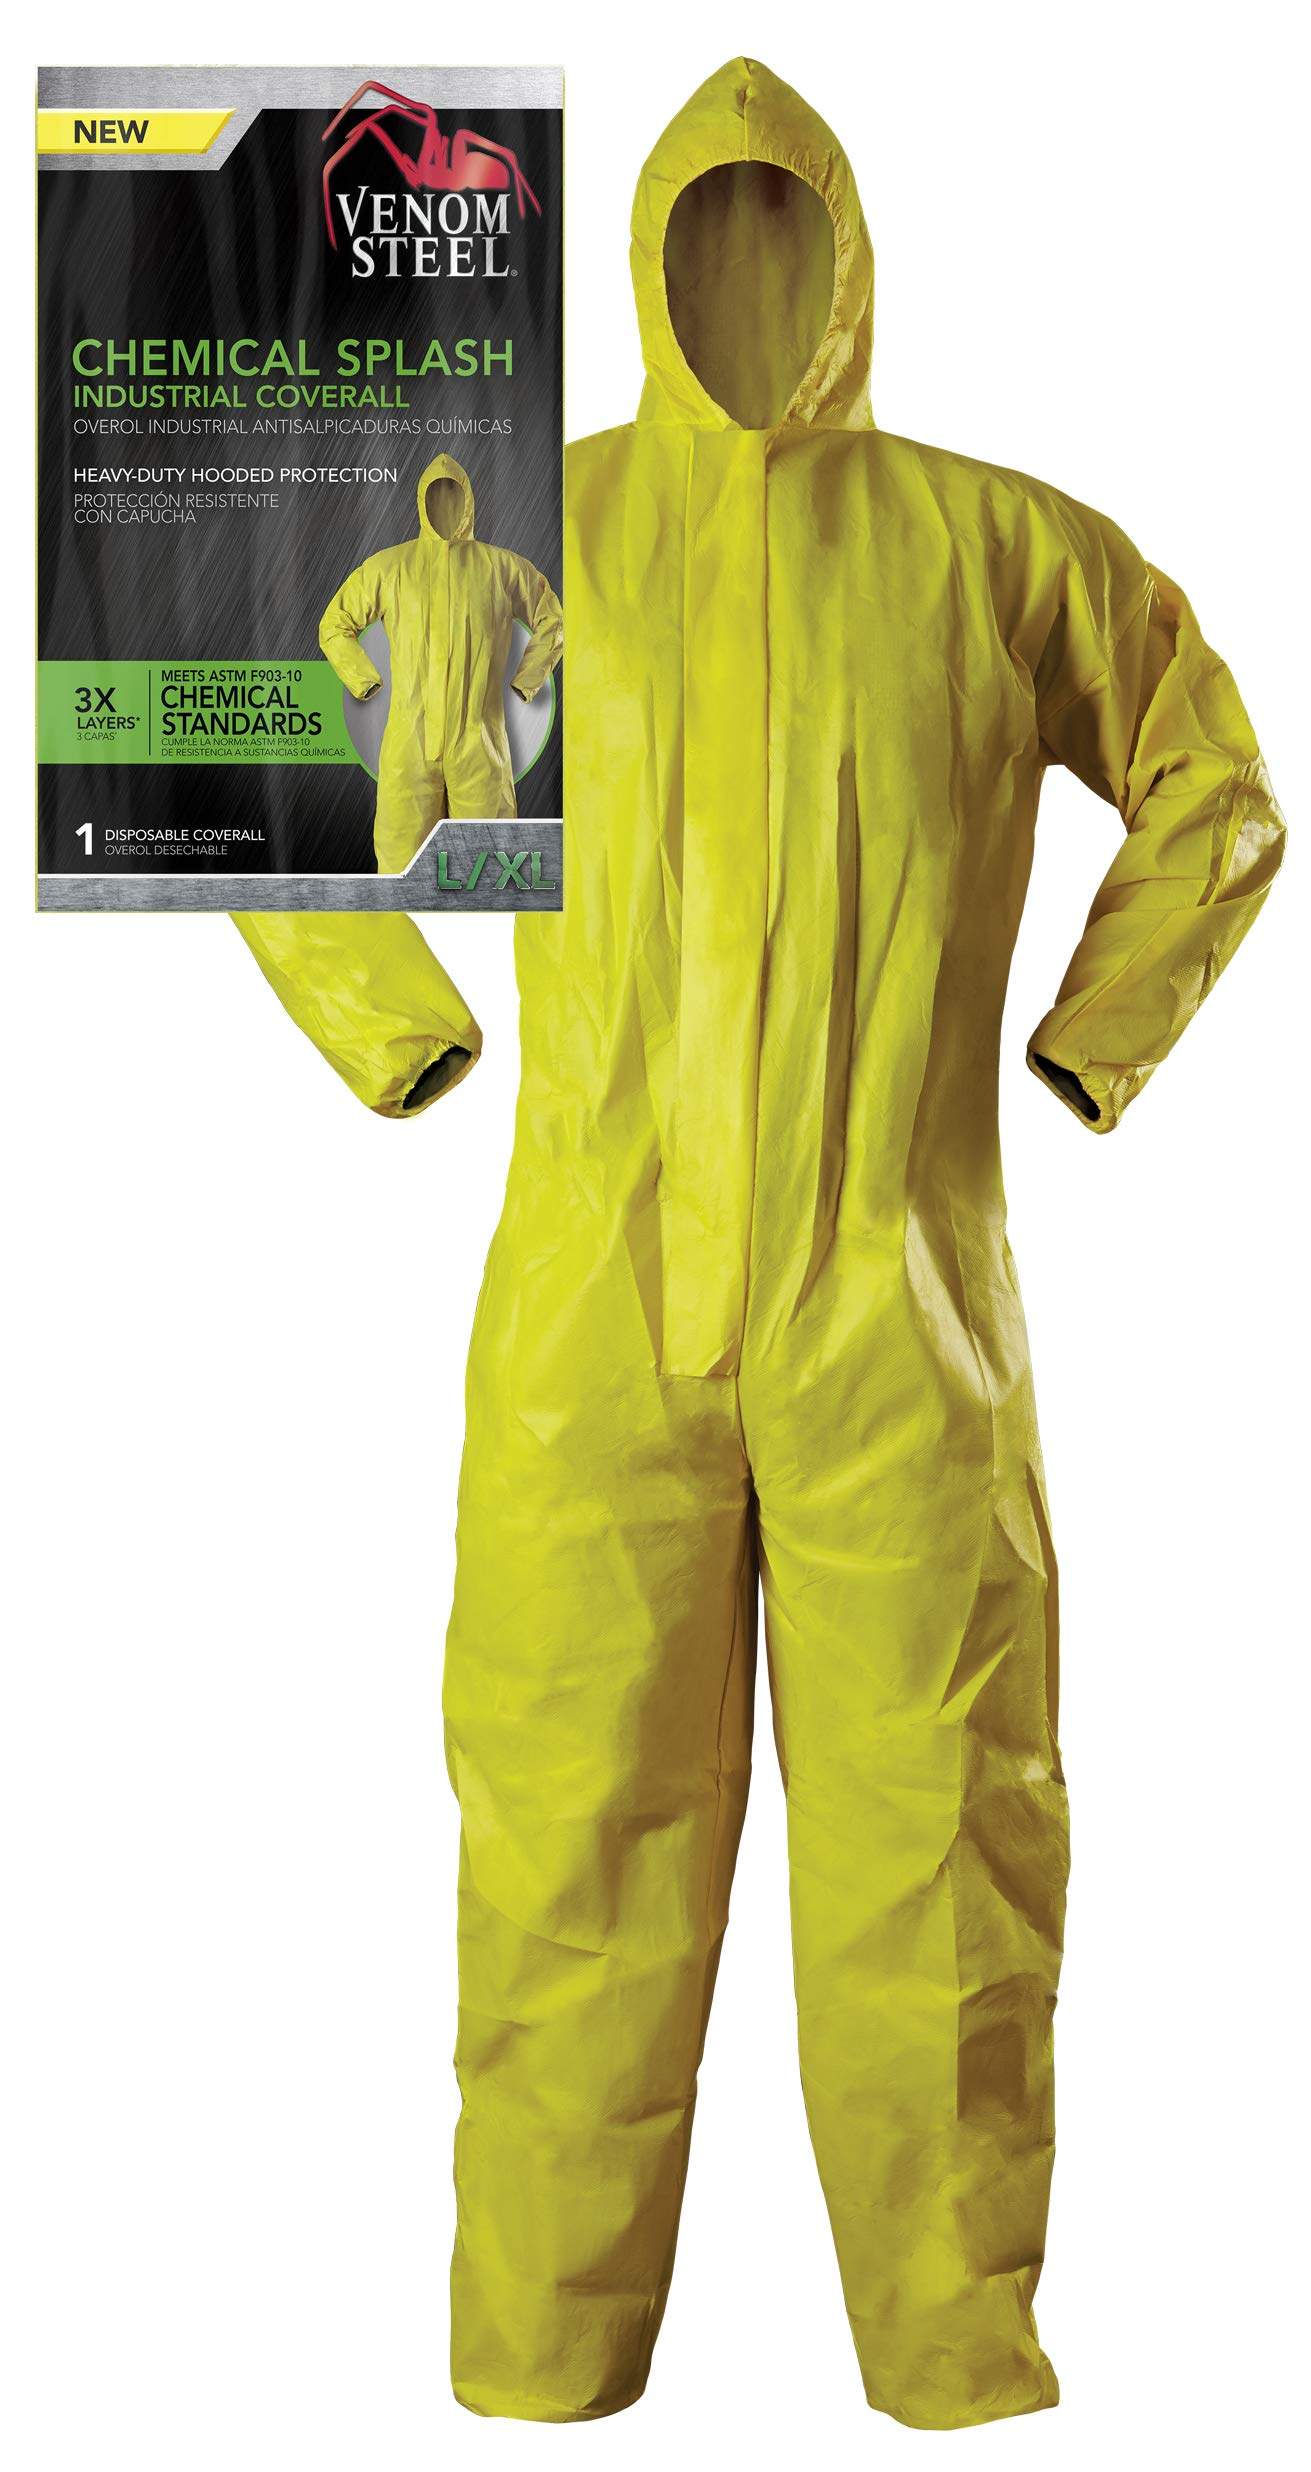 Venom Steel Disposable Chemical Splash Industrial Coverall, Hooded, Elastic Wrist and Waist, Yellow, L/XL